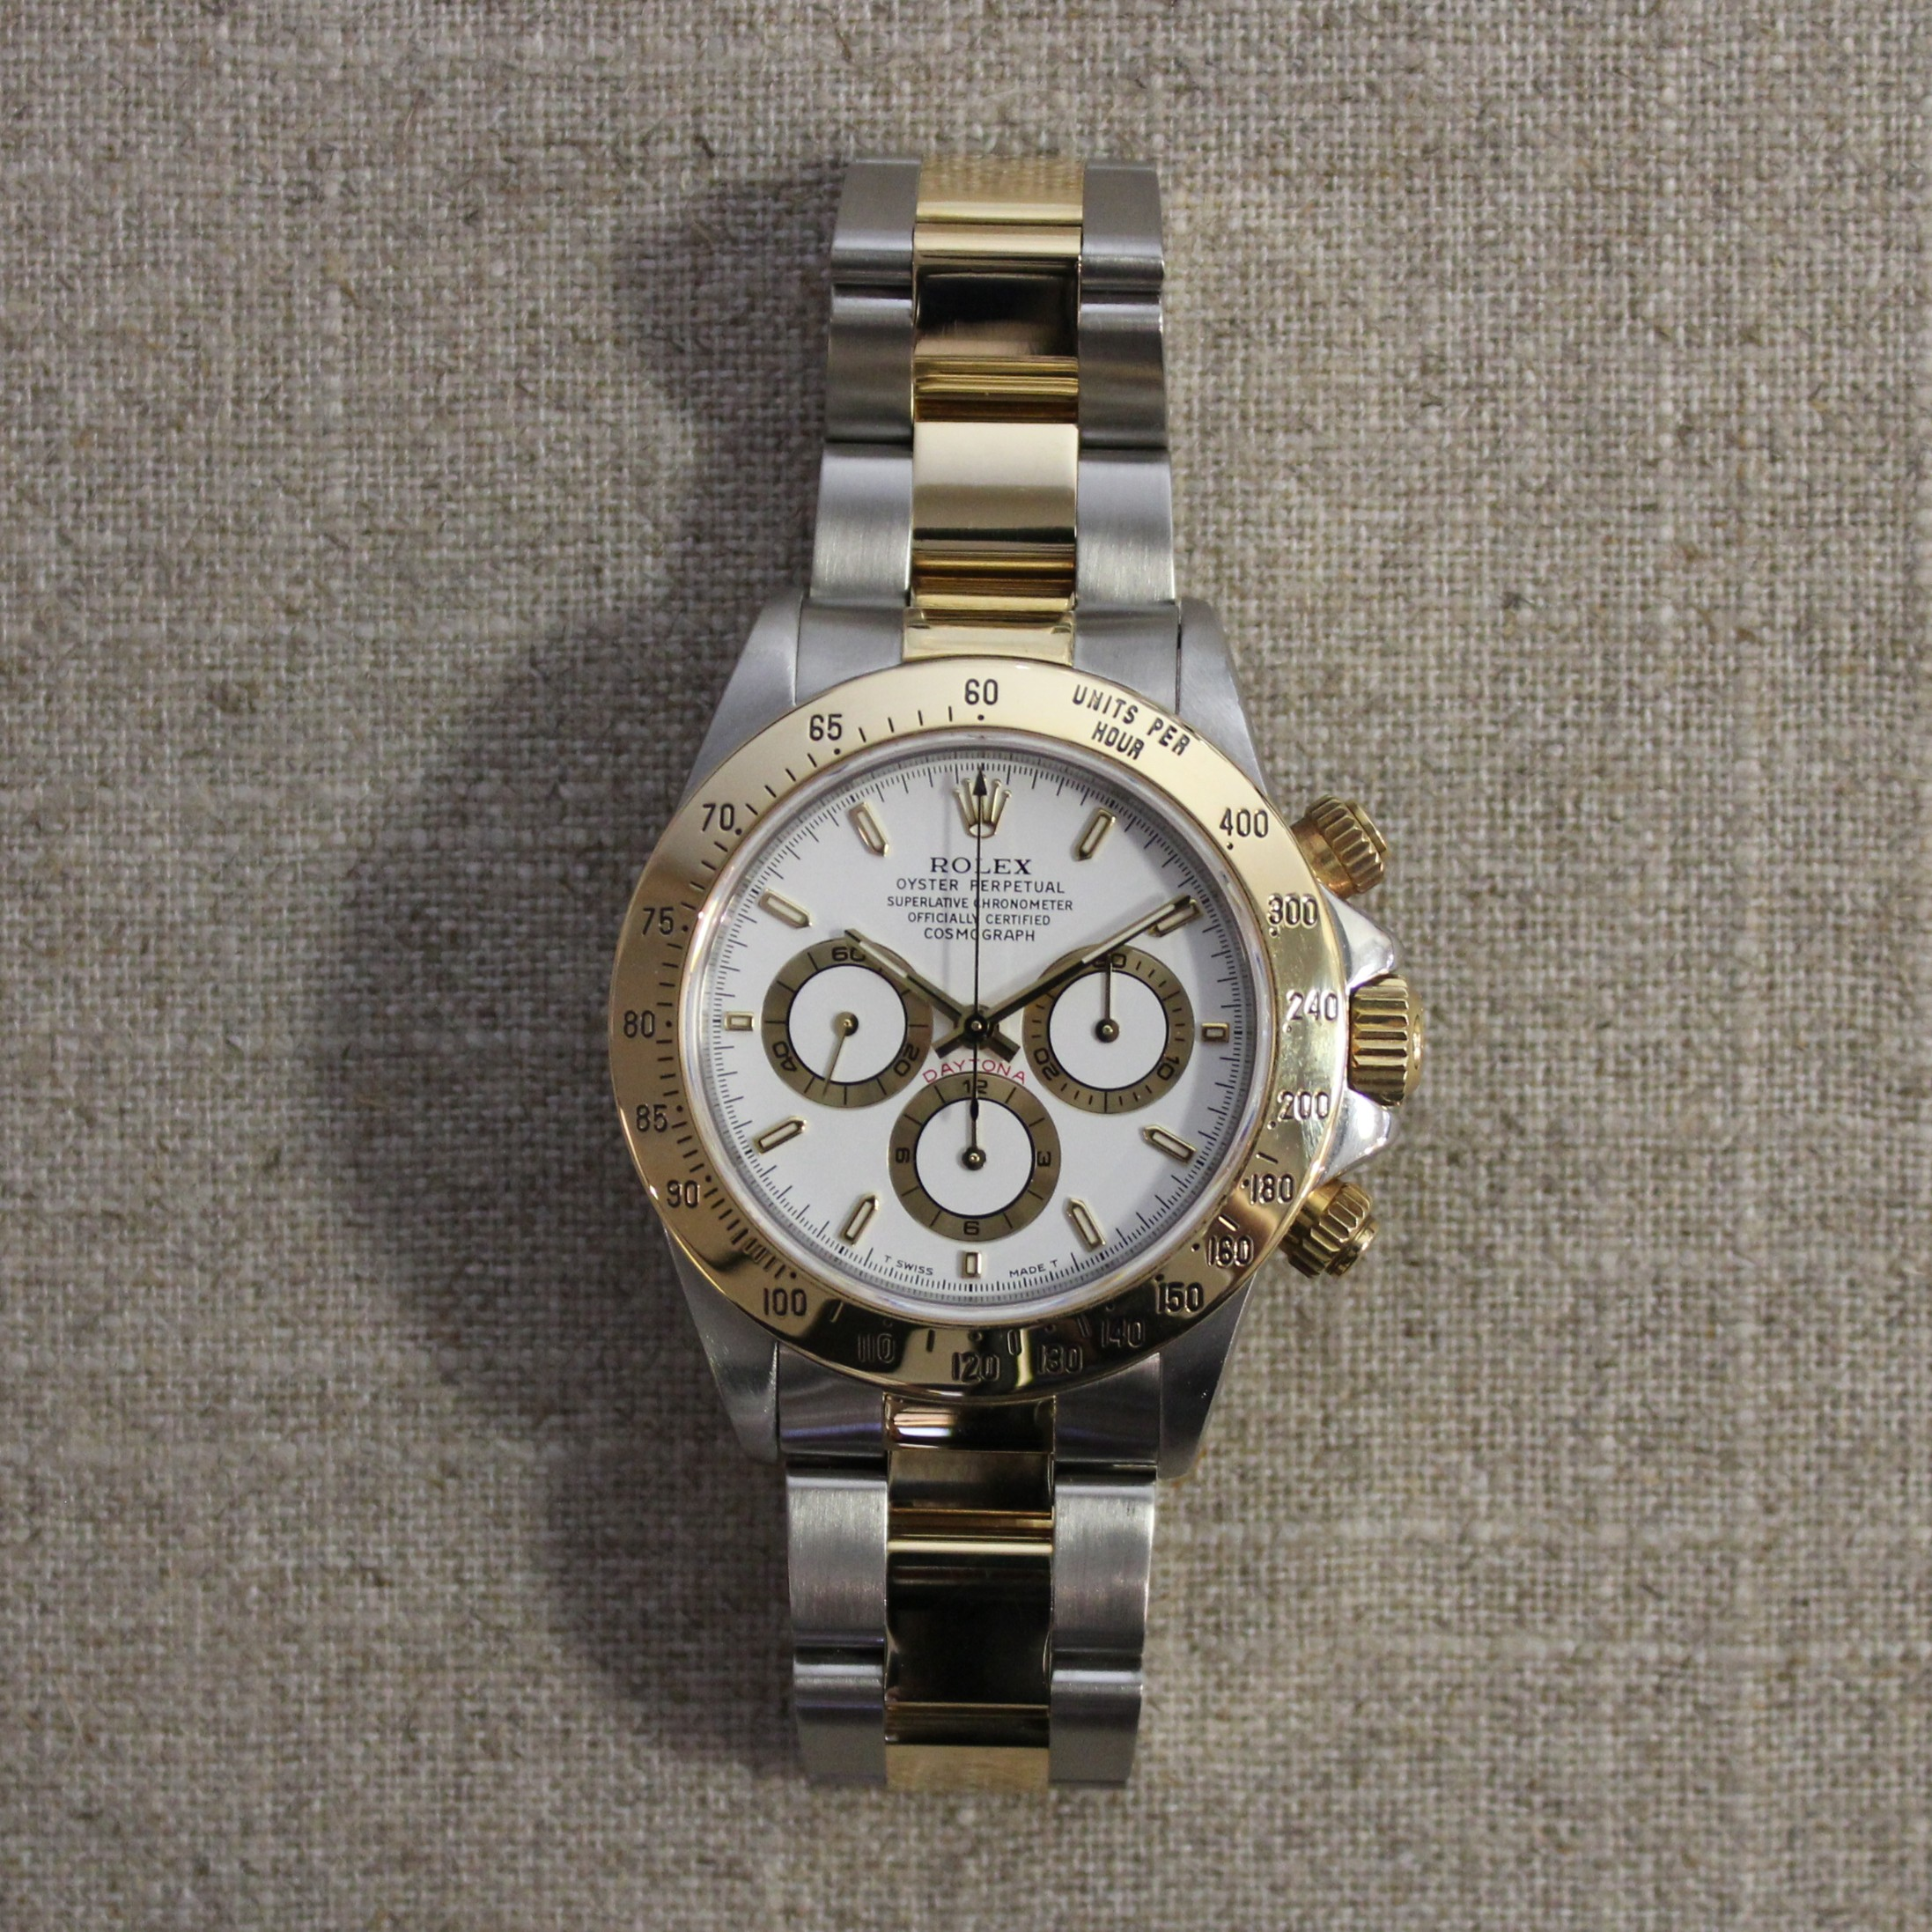 VINTAGE STAINLESS STEEL AND ROLEX DAYTONA 40MM